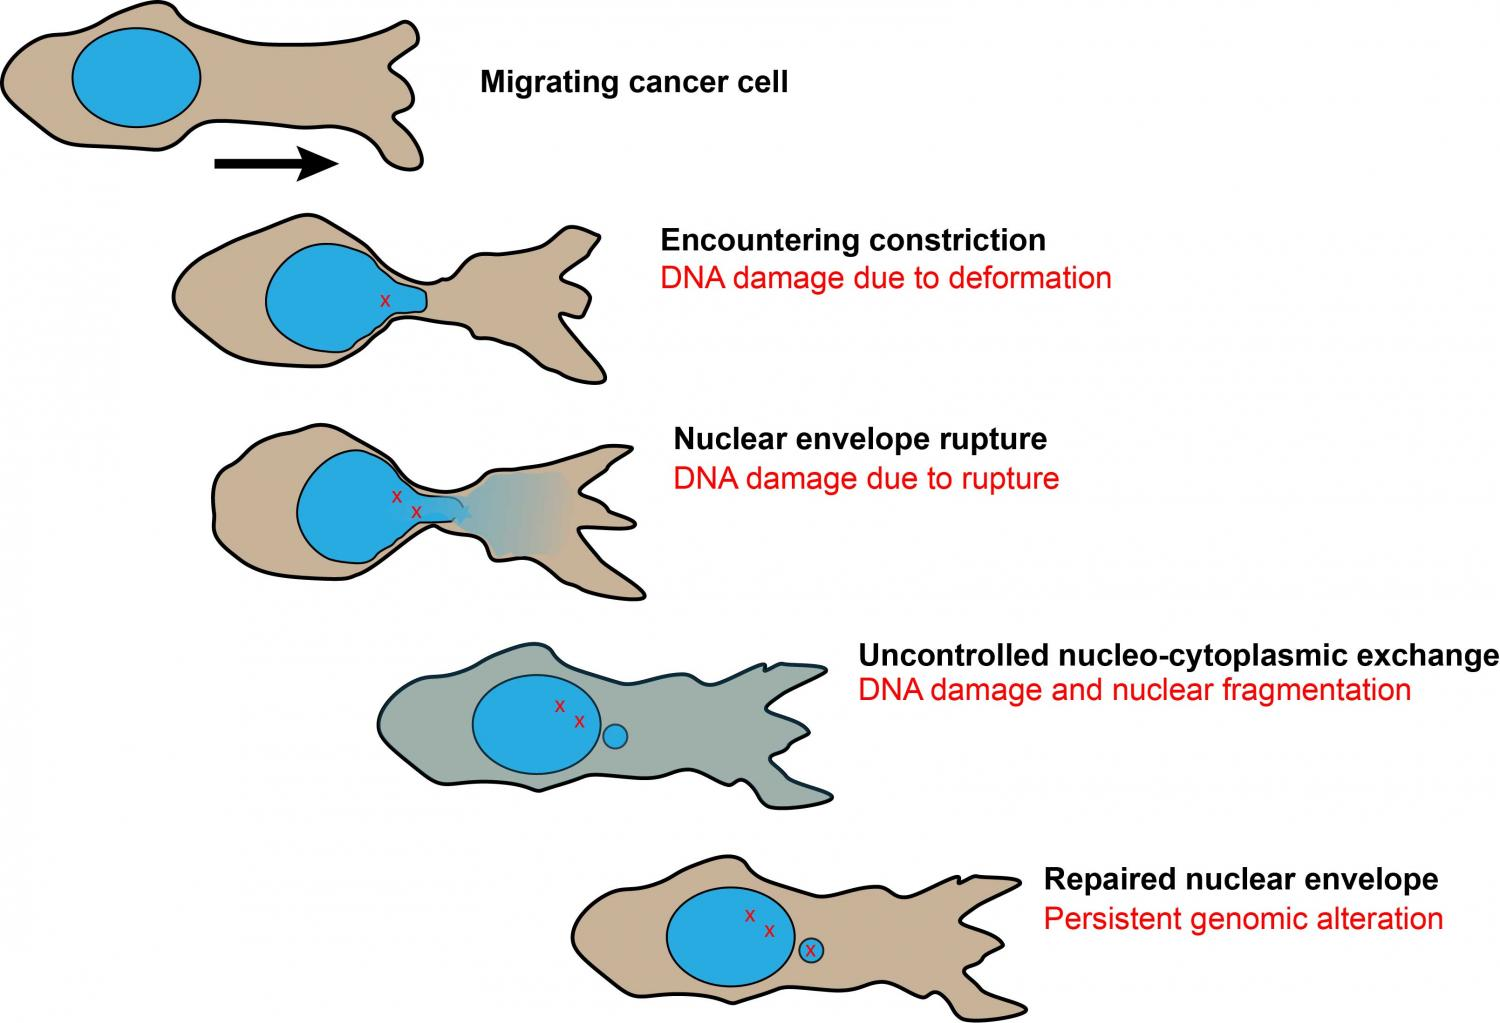 Cancer Cells Show Resilient Nuclear Rupture Repair But Expose Envelope Schematic A Overview Of During Migration Through Tight Spacesand The Consequences On Genomic Integrity